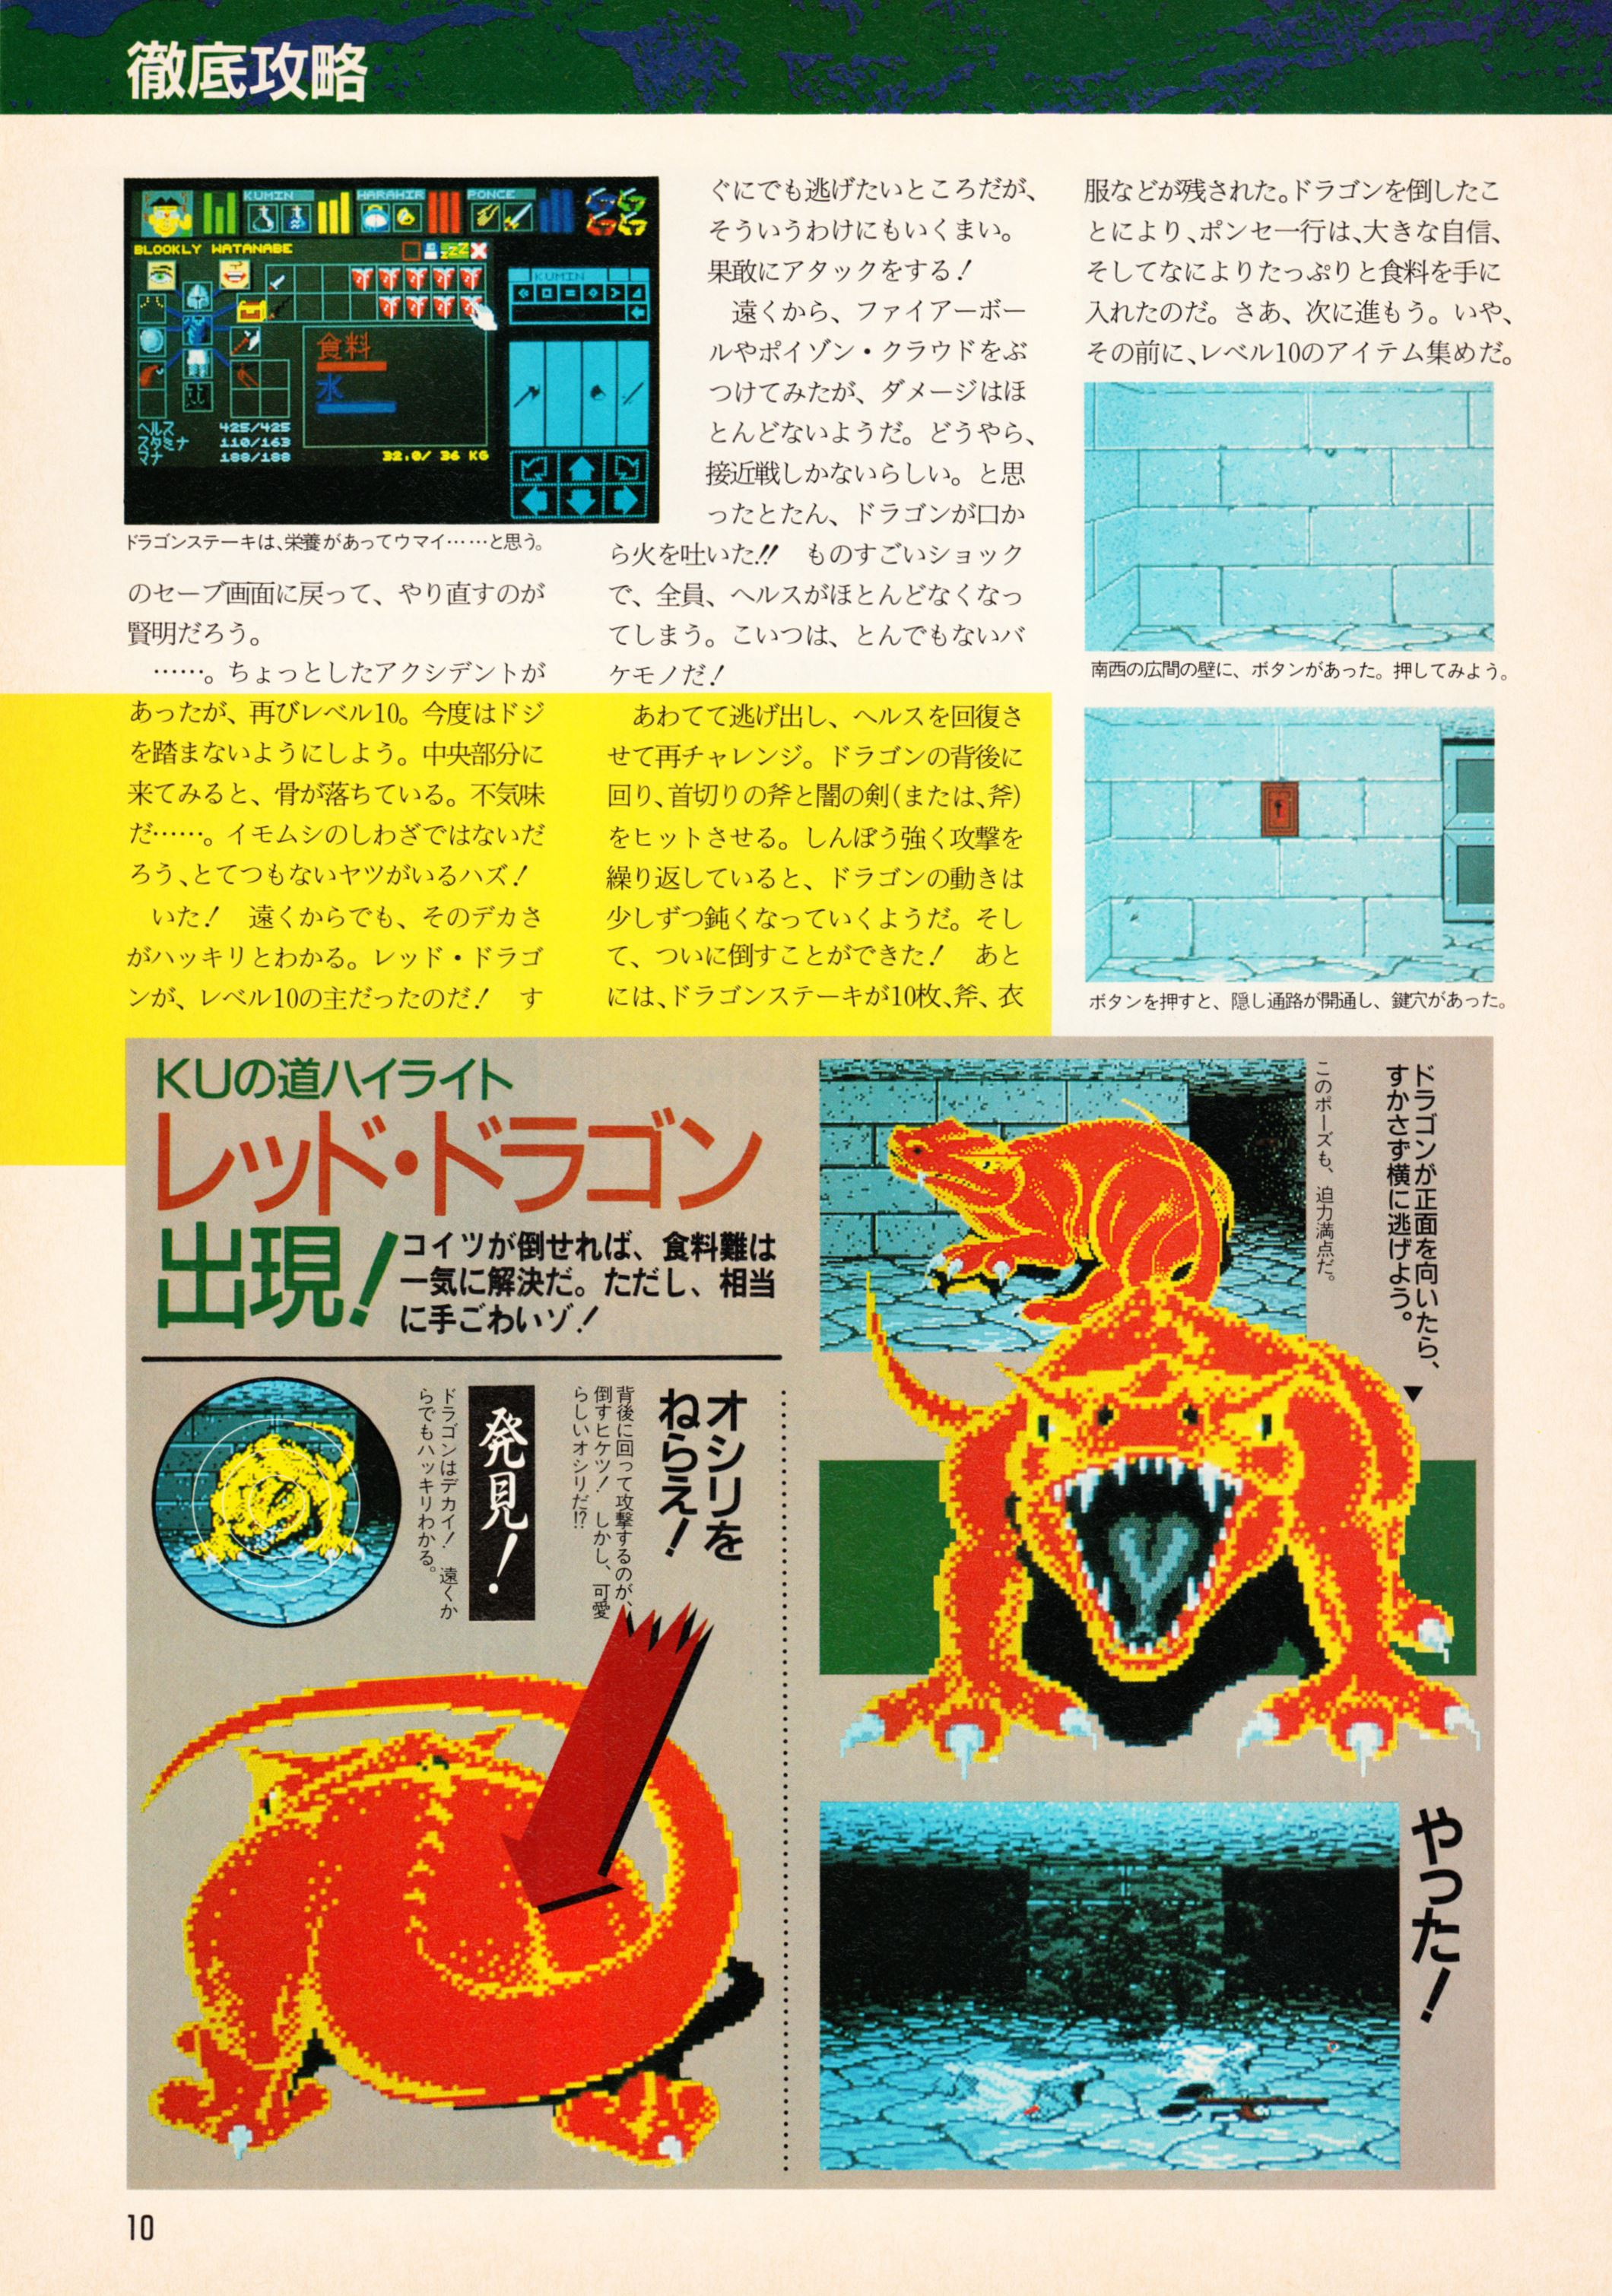 Supplement 1 - Chaos Strikes Back Companion Guide Guide published in Japanese magazine 'Popcom', Vol 9 No 2 01 February 1991, Page 12